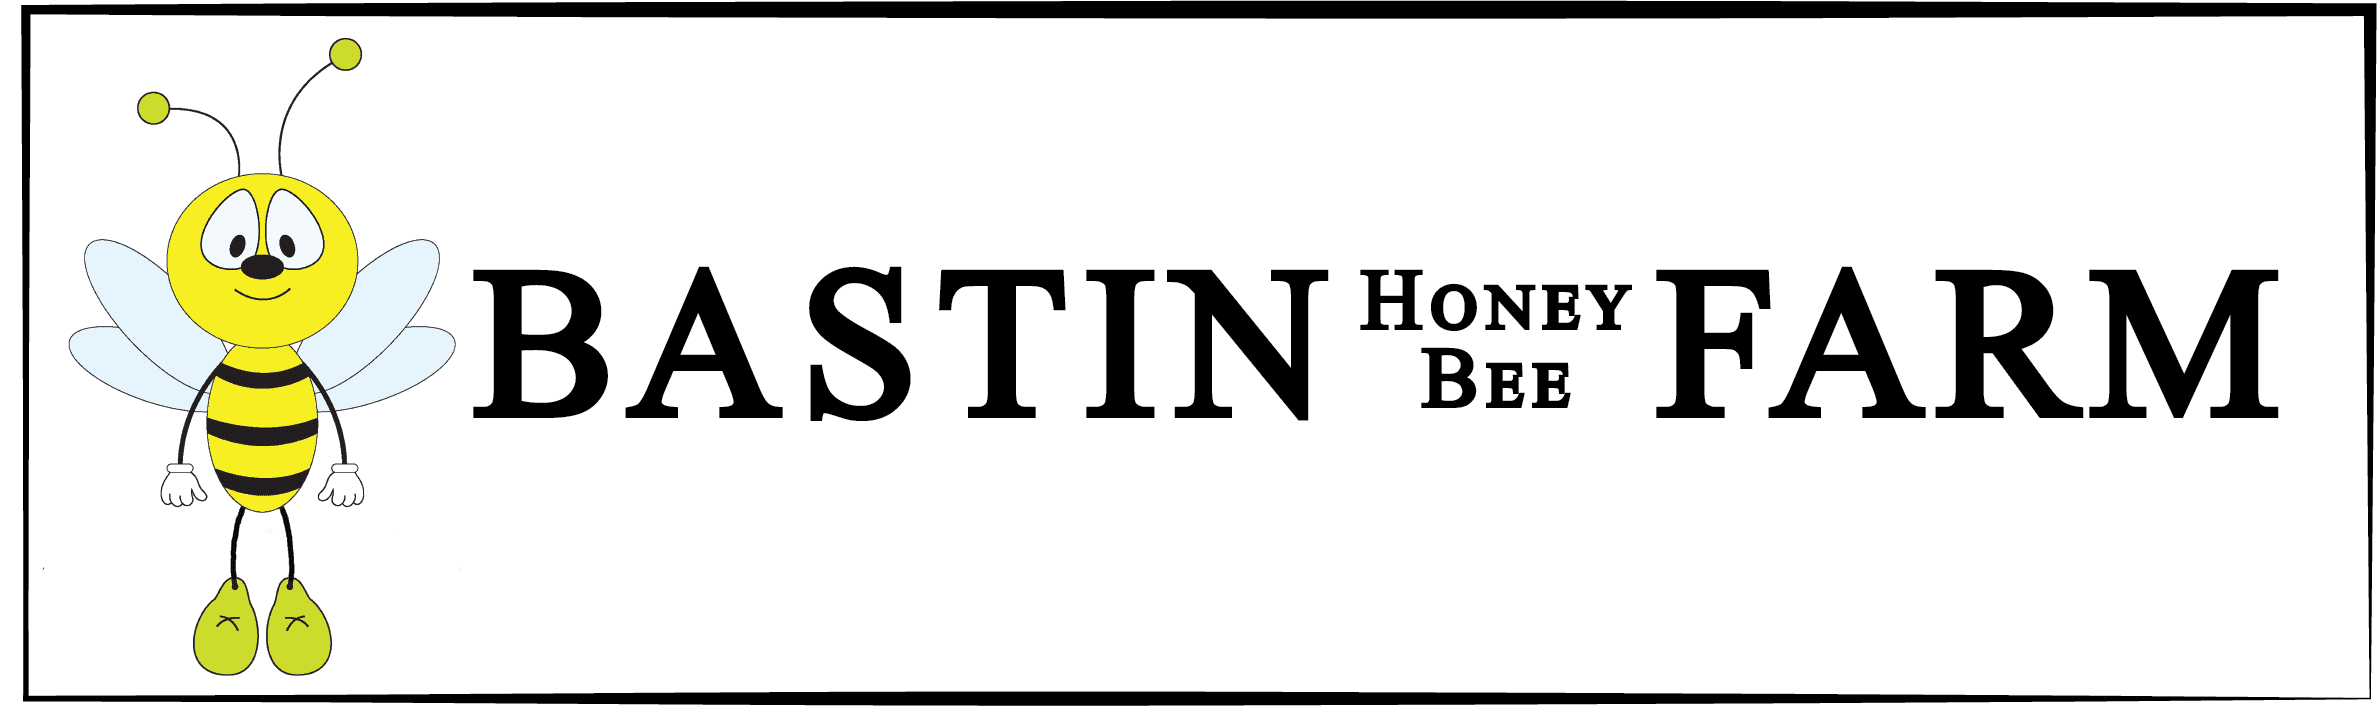 Bastin Honey Bee Farm